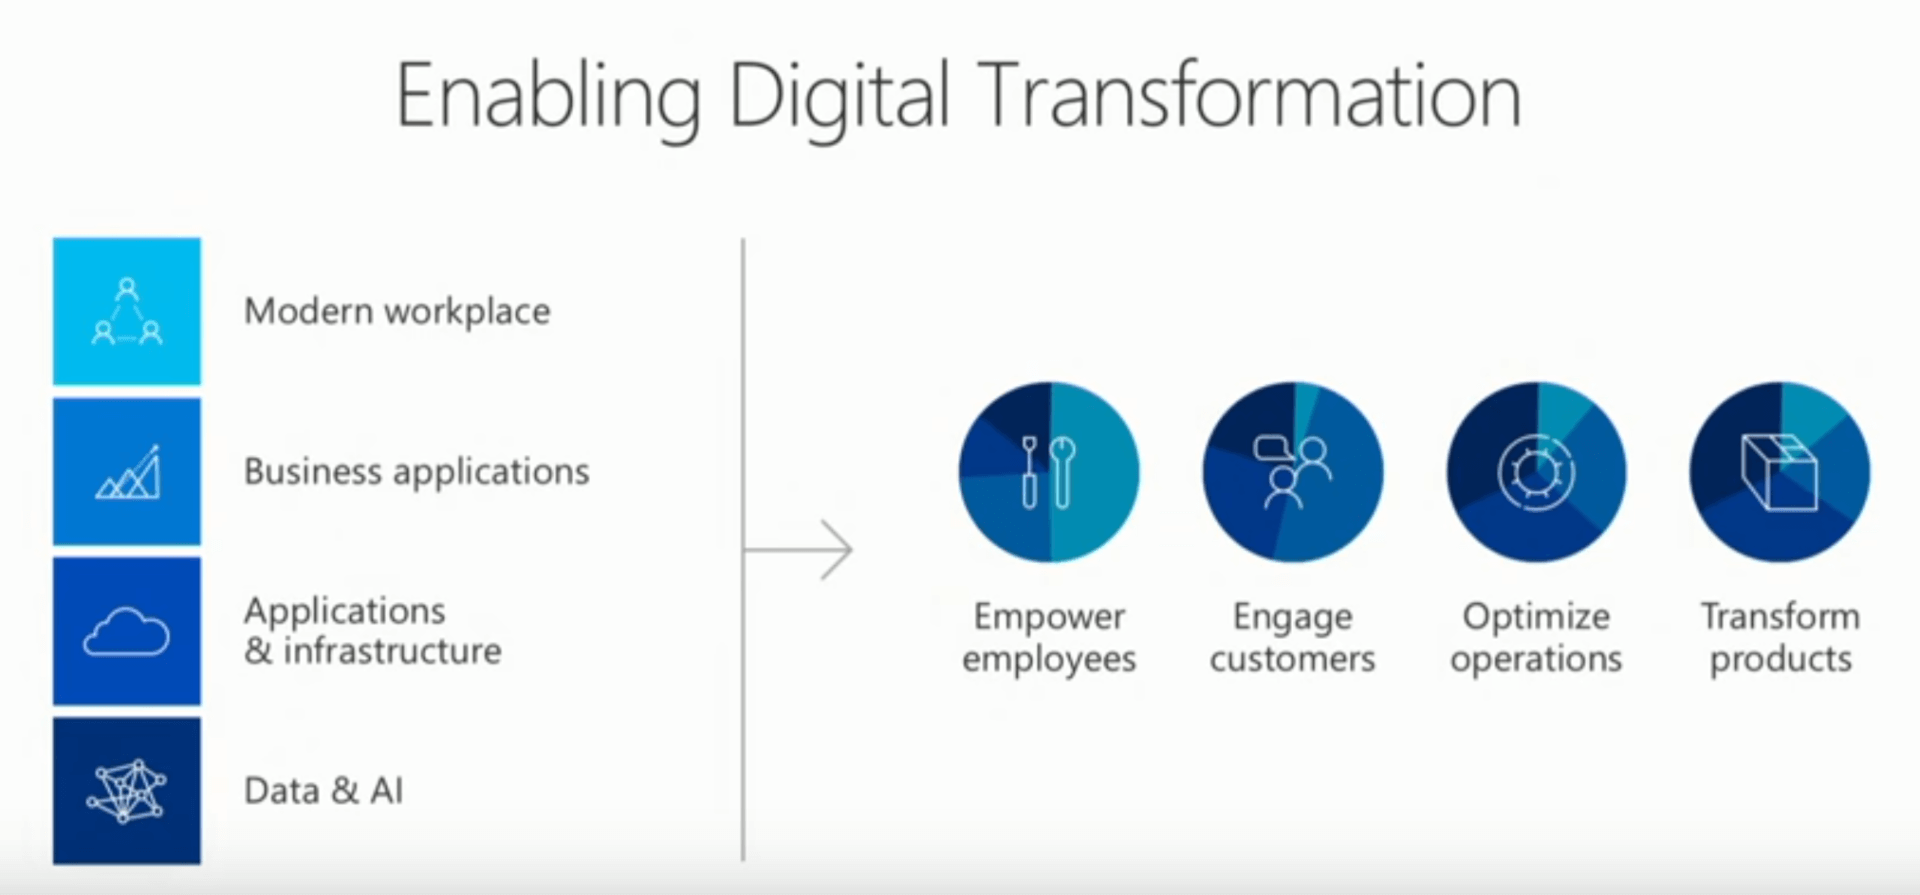 Texte de remplacement généré par une machine : Enabling Digital Transformation Modern workplace Business applications Applications & infrastructure Data & Al coco Transform products Empower employees Engage customers Optimize operations